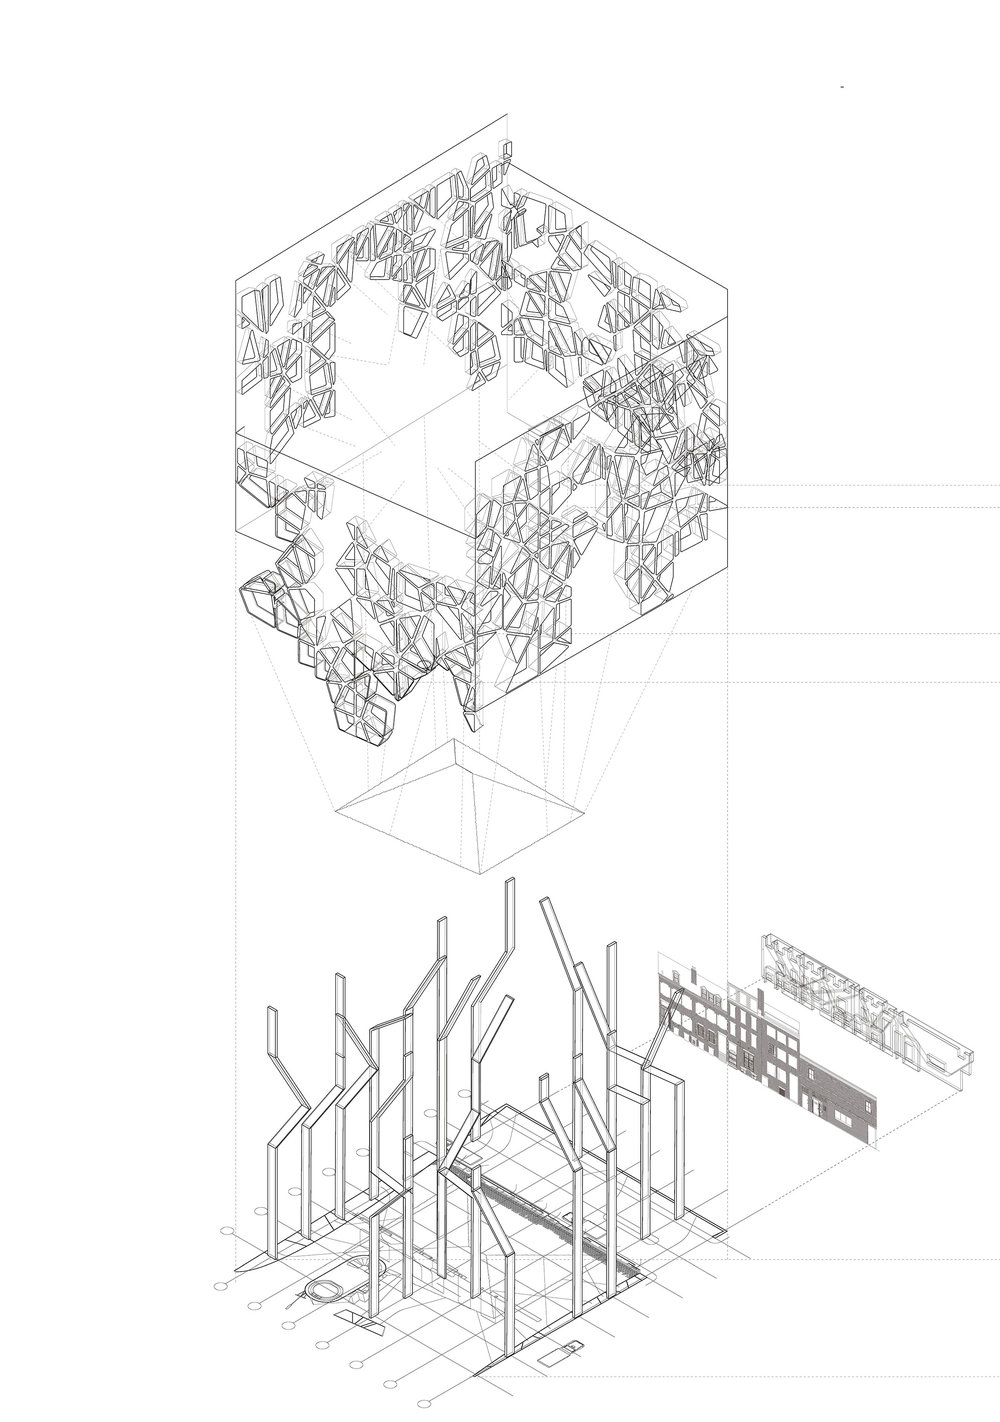 Exploded axonometric showing the façade, the salt pile, and the columns.